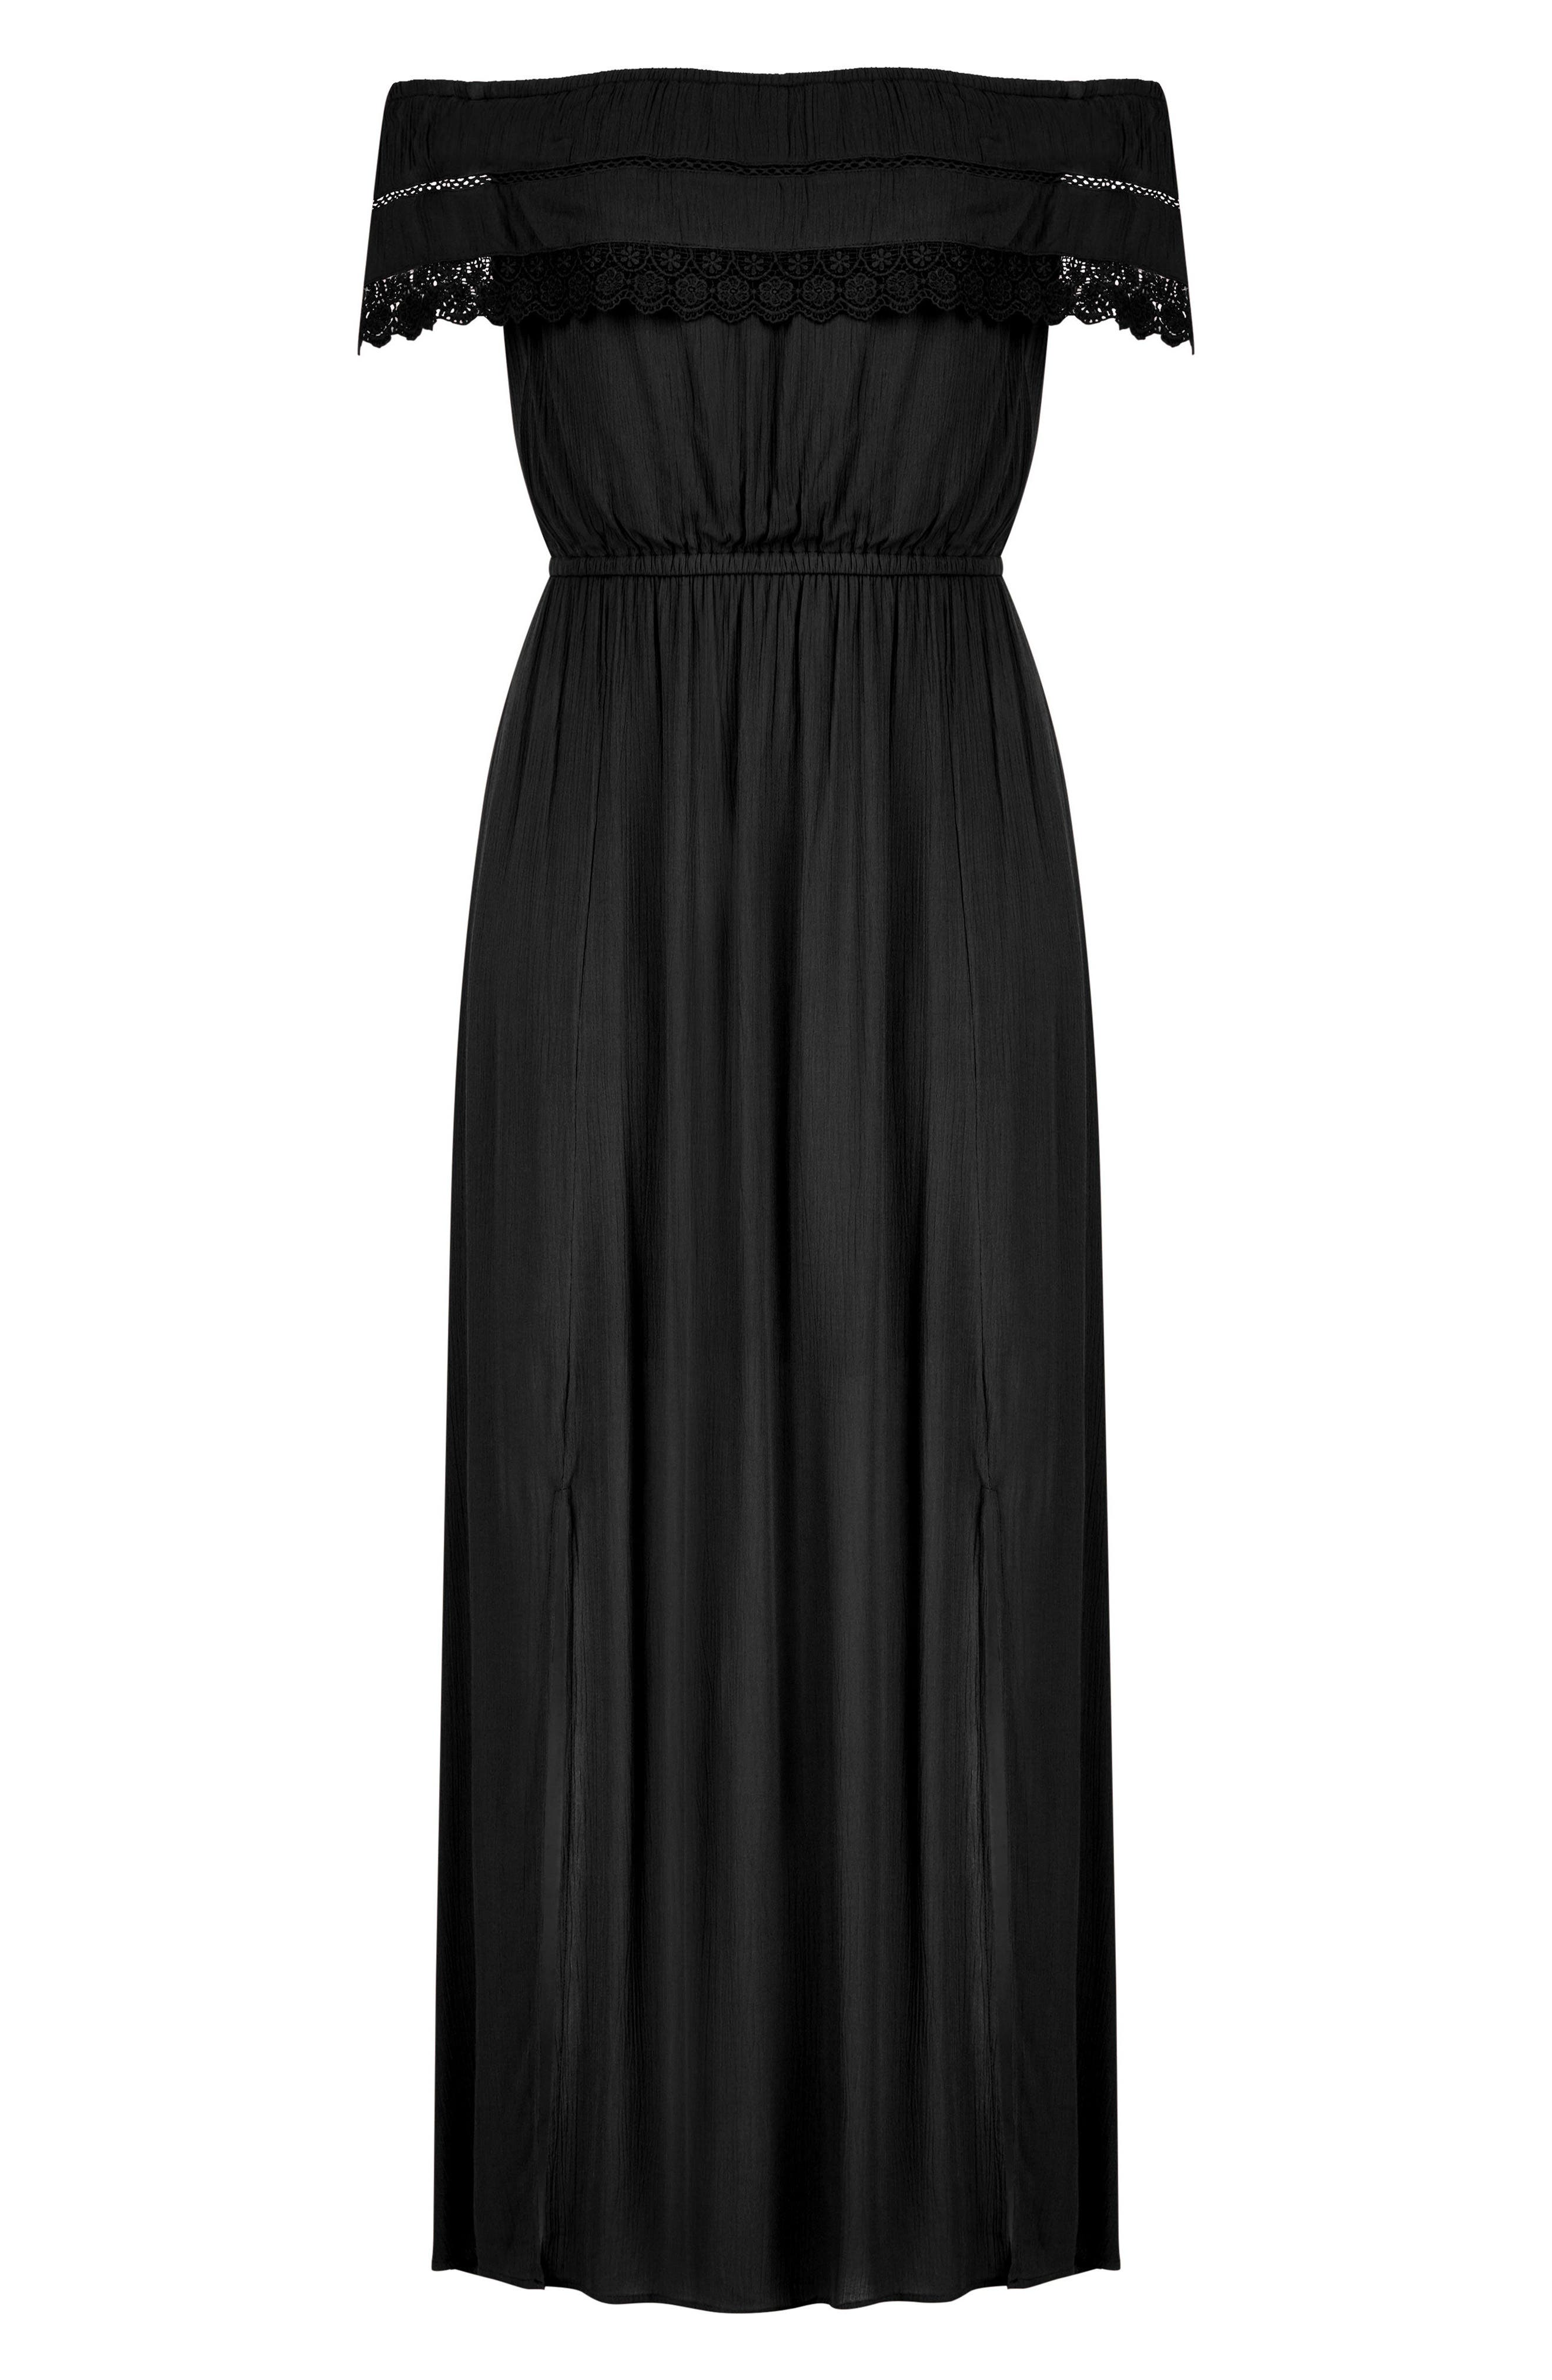 Off the Shoulder Maxi Dress,                             Alternate thumbnail 3, color,                             BLACK